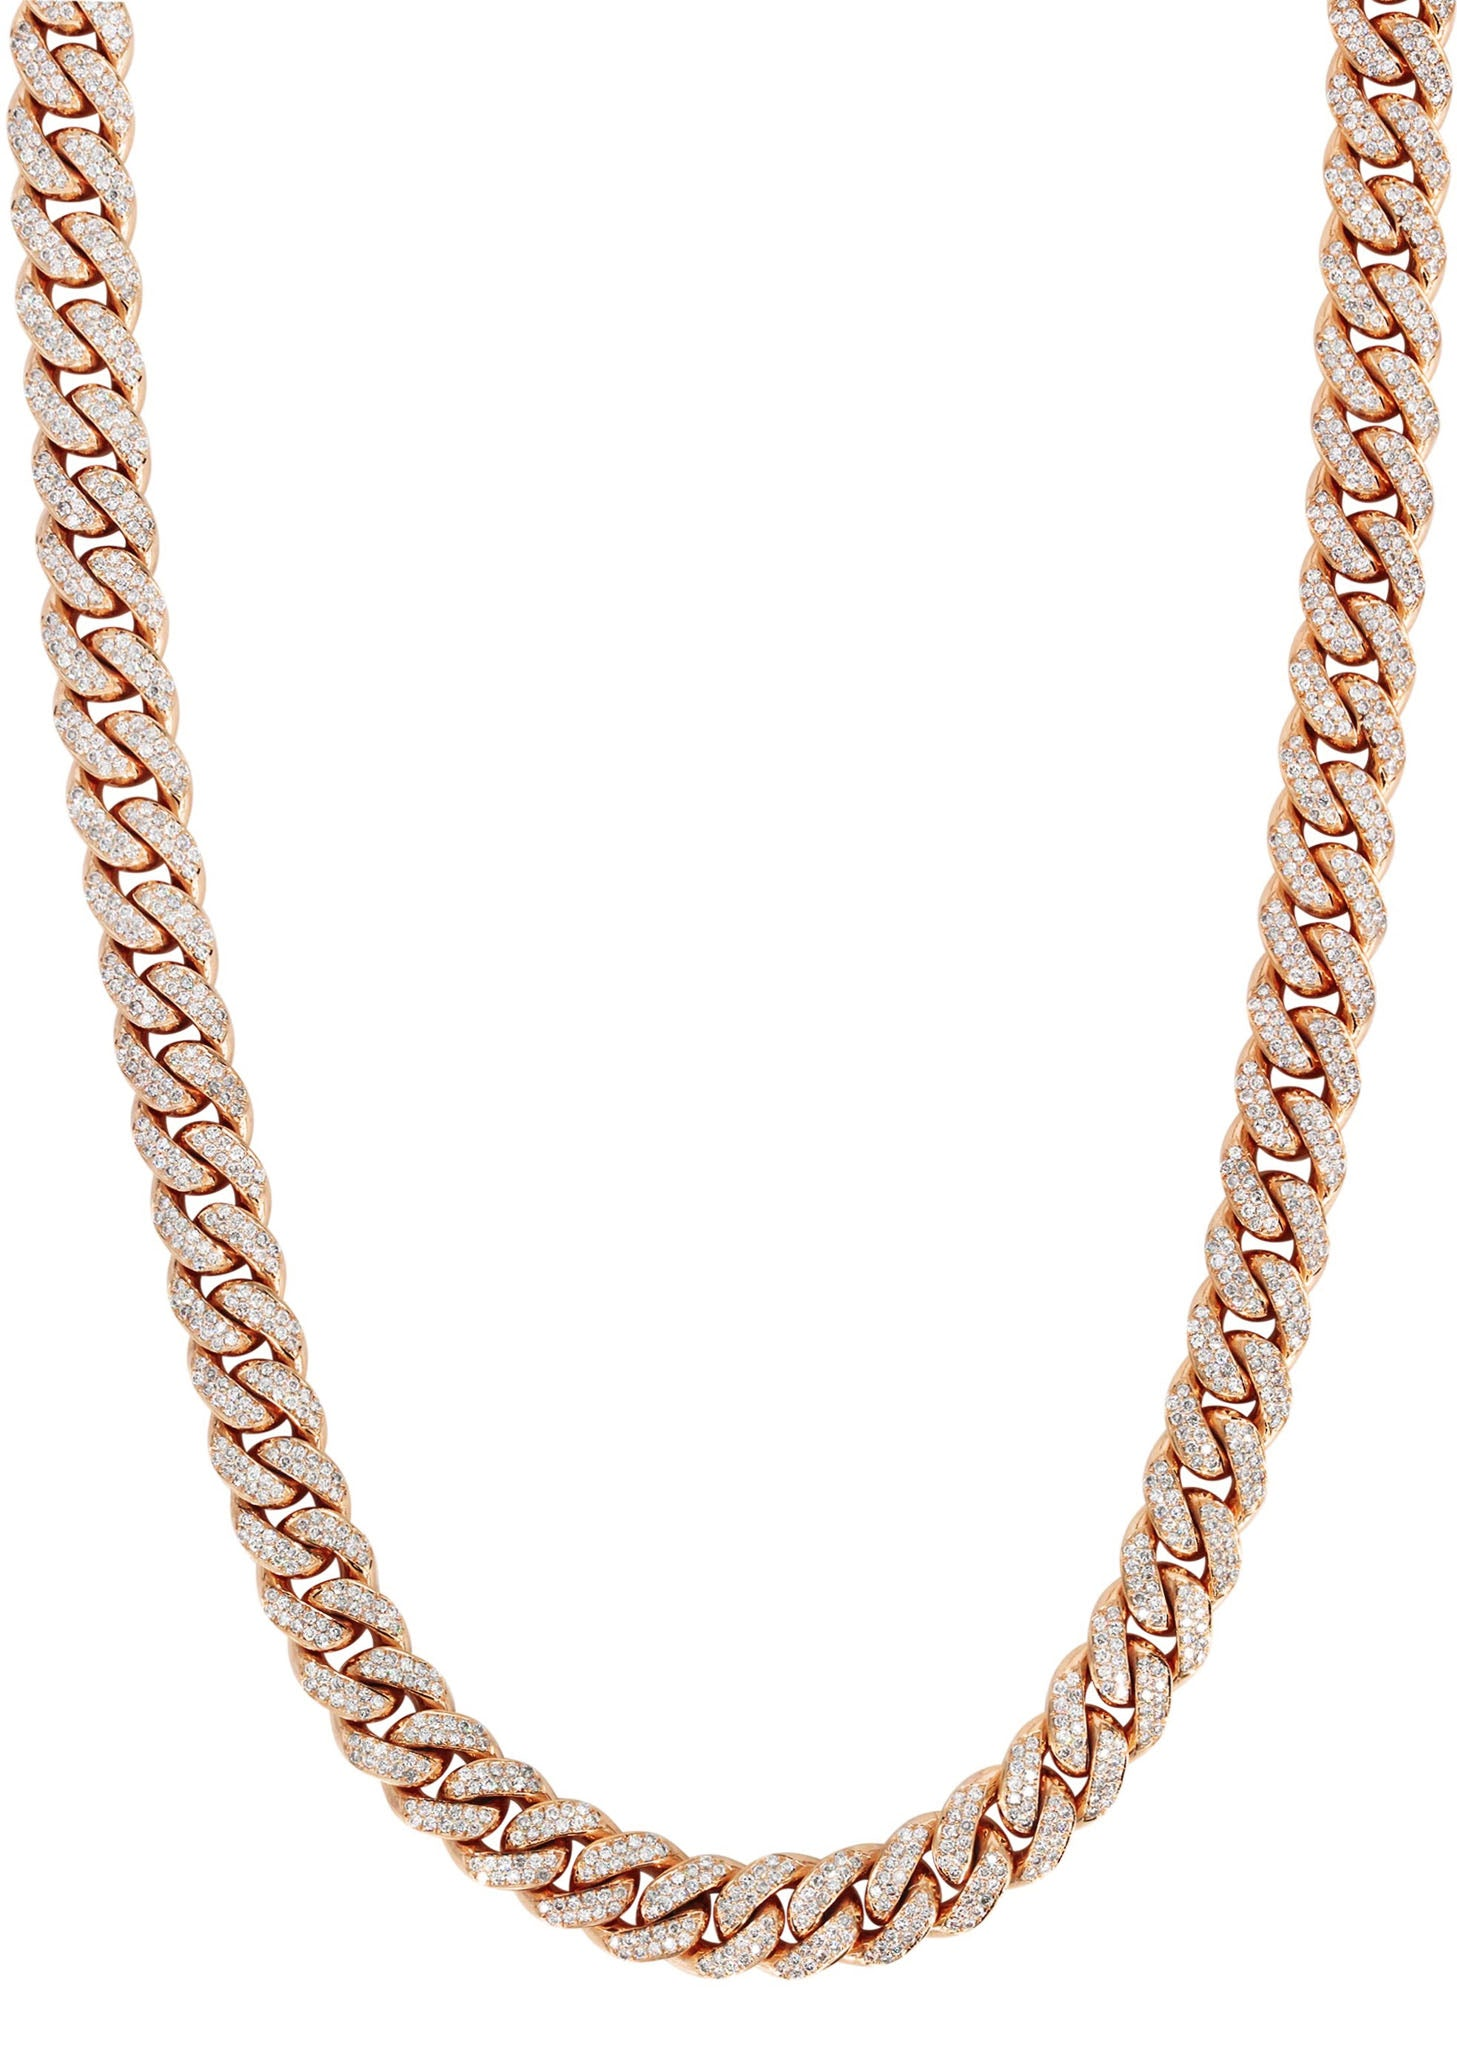 Width 0.5 mm Details about  /14K Rose Gold Cable Link Chain